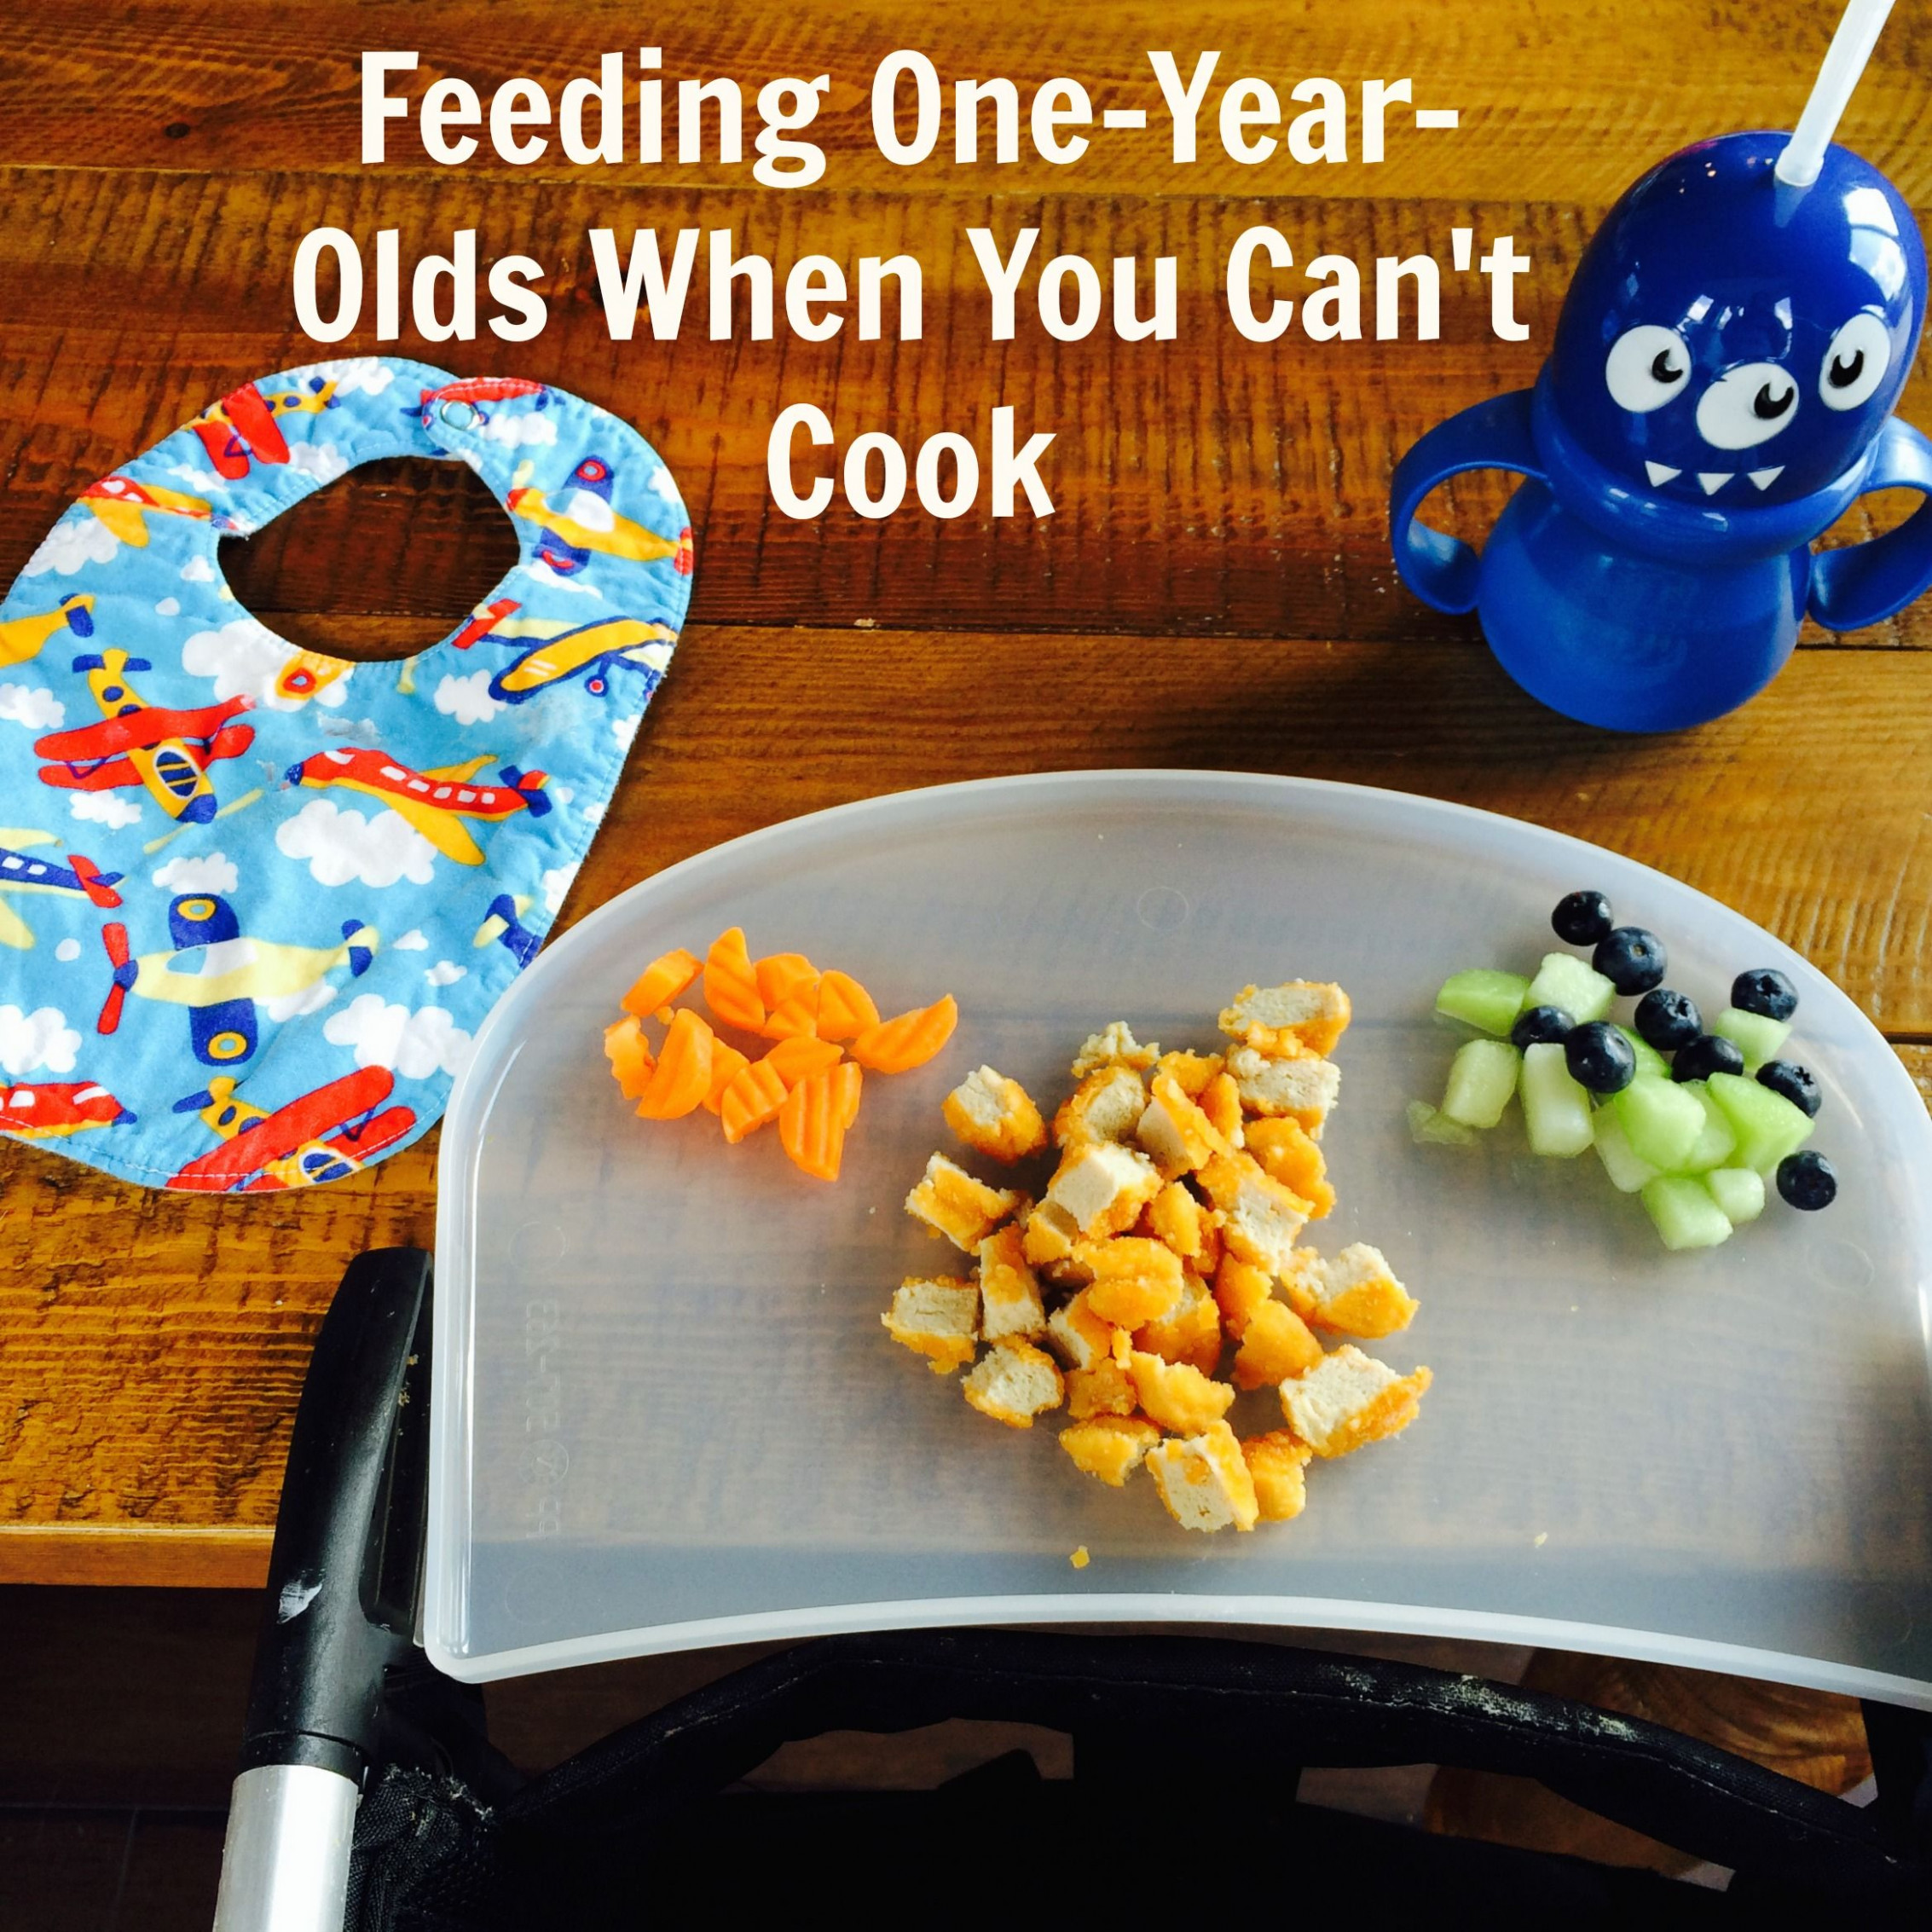 Feeding One-Year-Olds When You Can't Cook | Food, Toddler ..